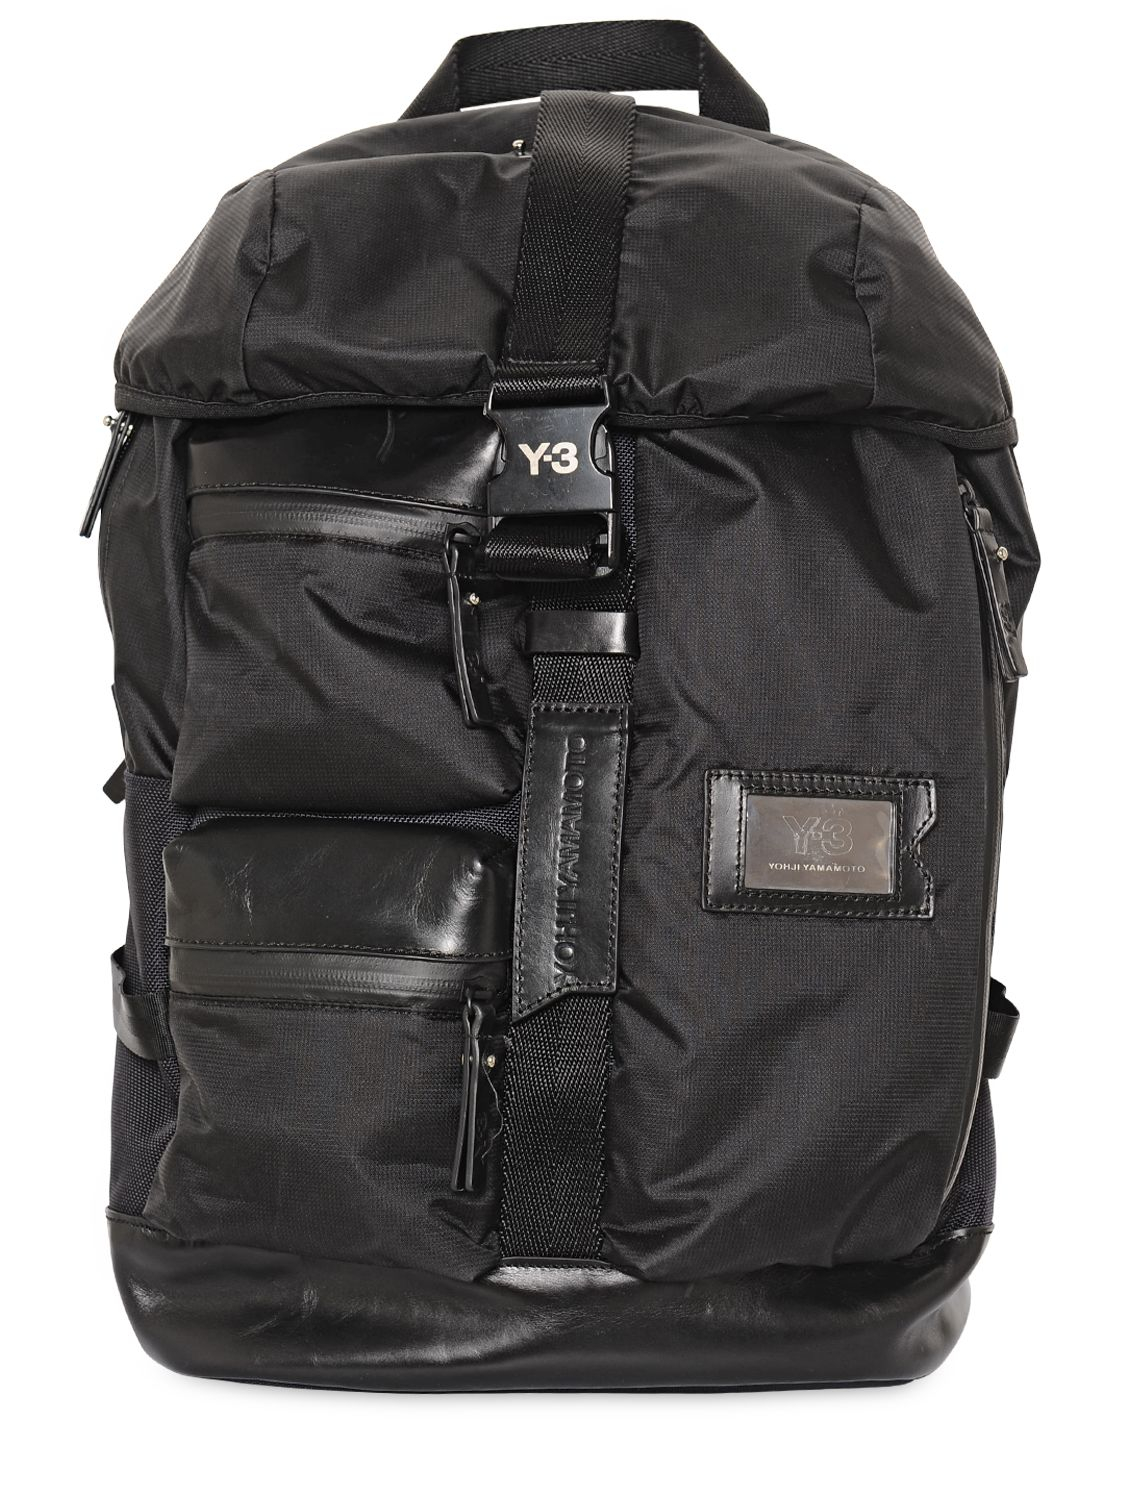 Y-3 Mobility Leather   Nylon Backpack in Black for Men - Lyst c19495f27f358